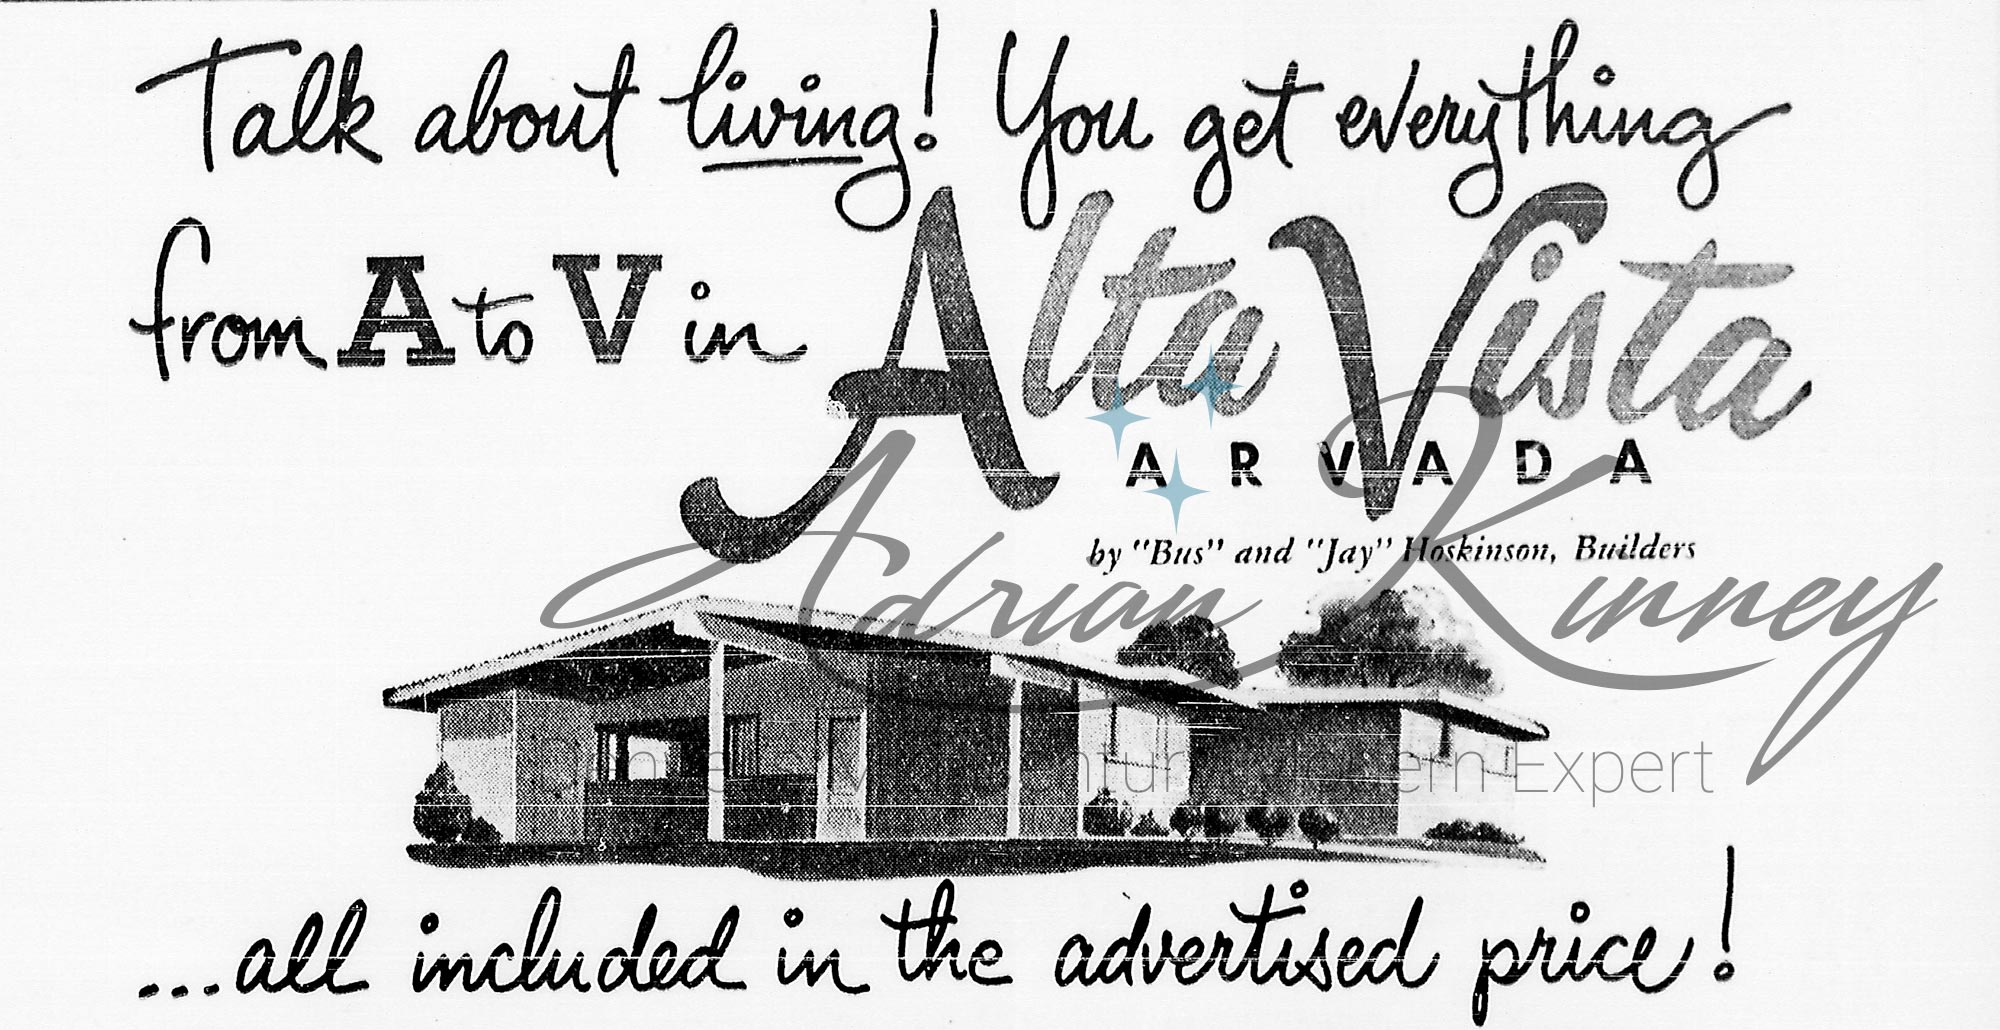 adrian-kinney-you-get-everything-from-a-to-v-alta-vista.jpg